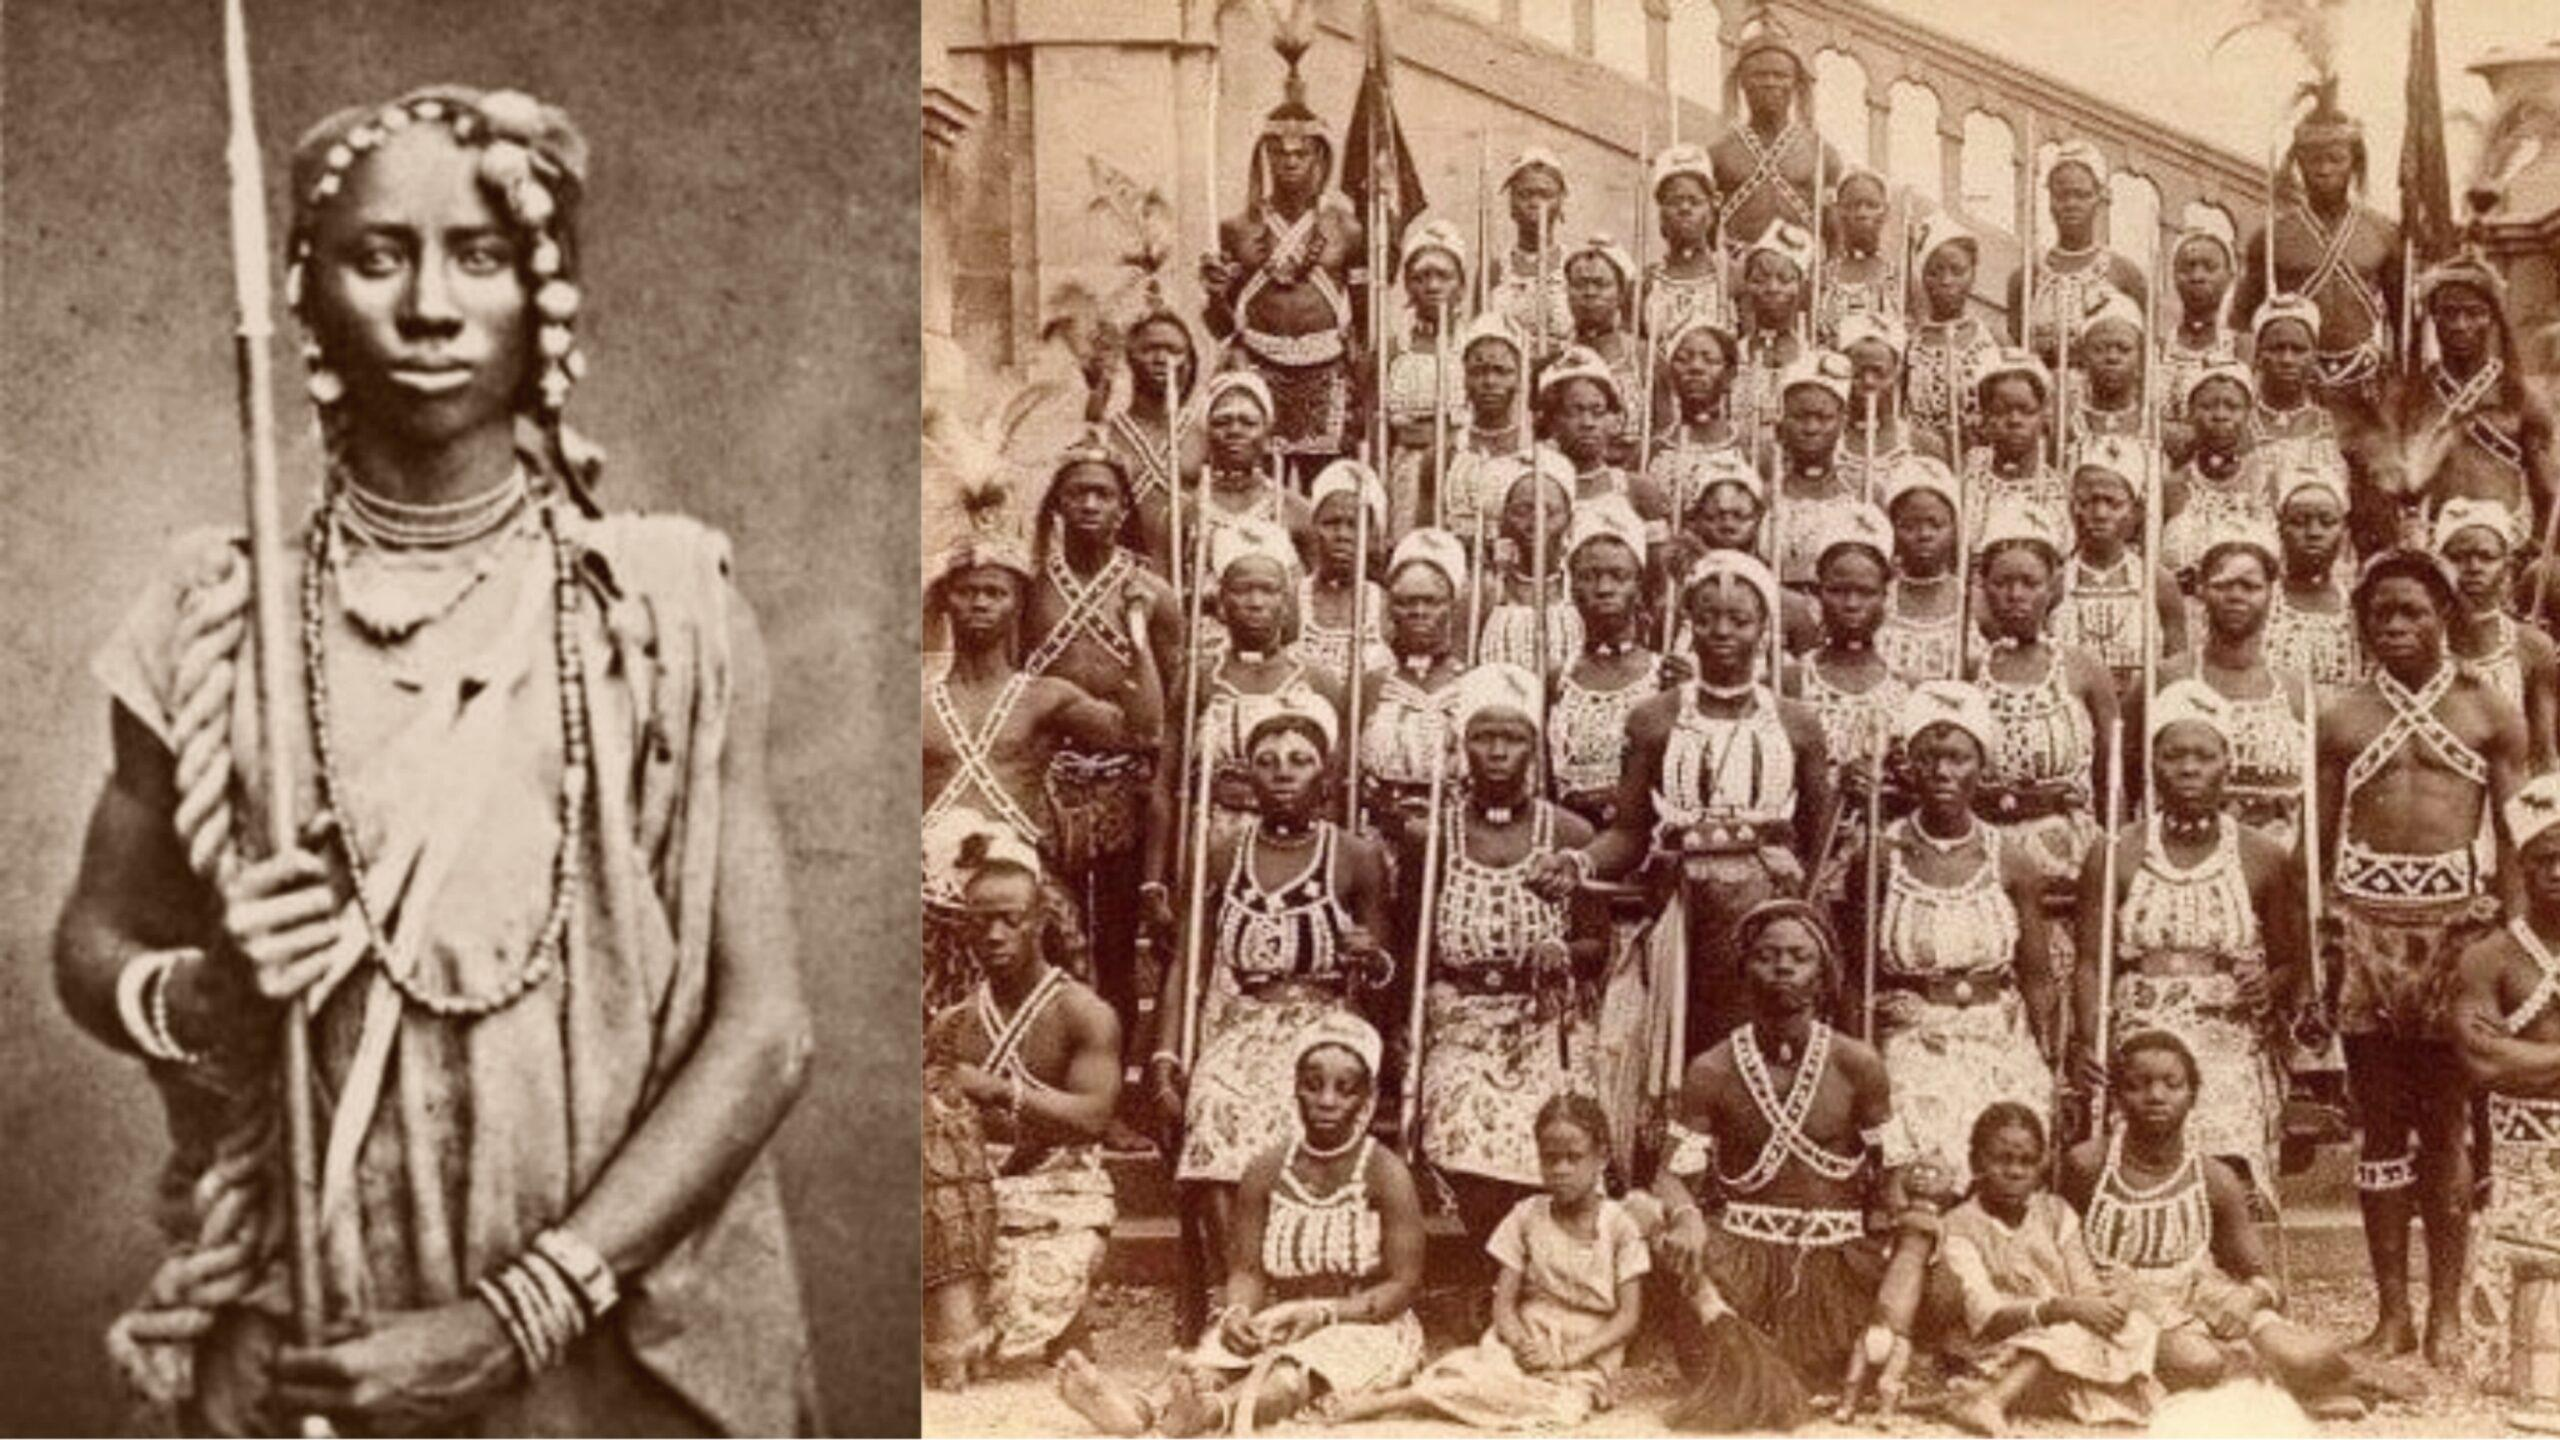 Queen Regent Hangbe, the founder of fearless female warriors of Dahomey Kingdom